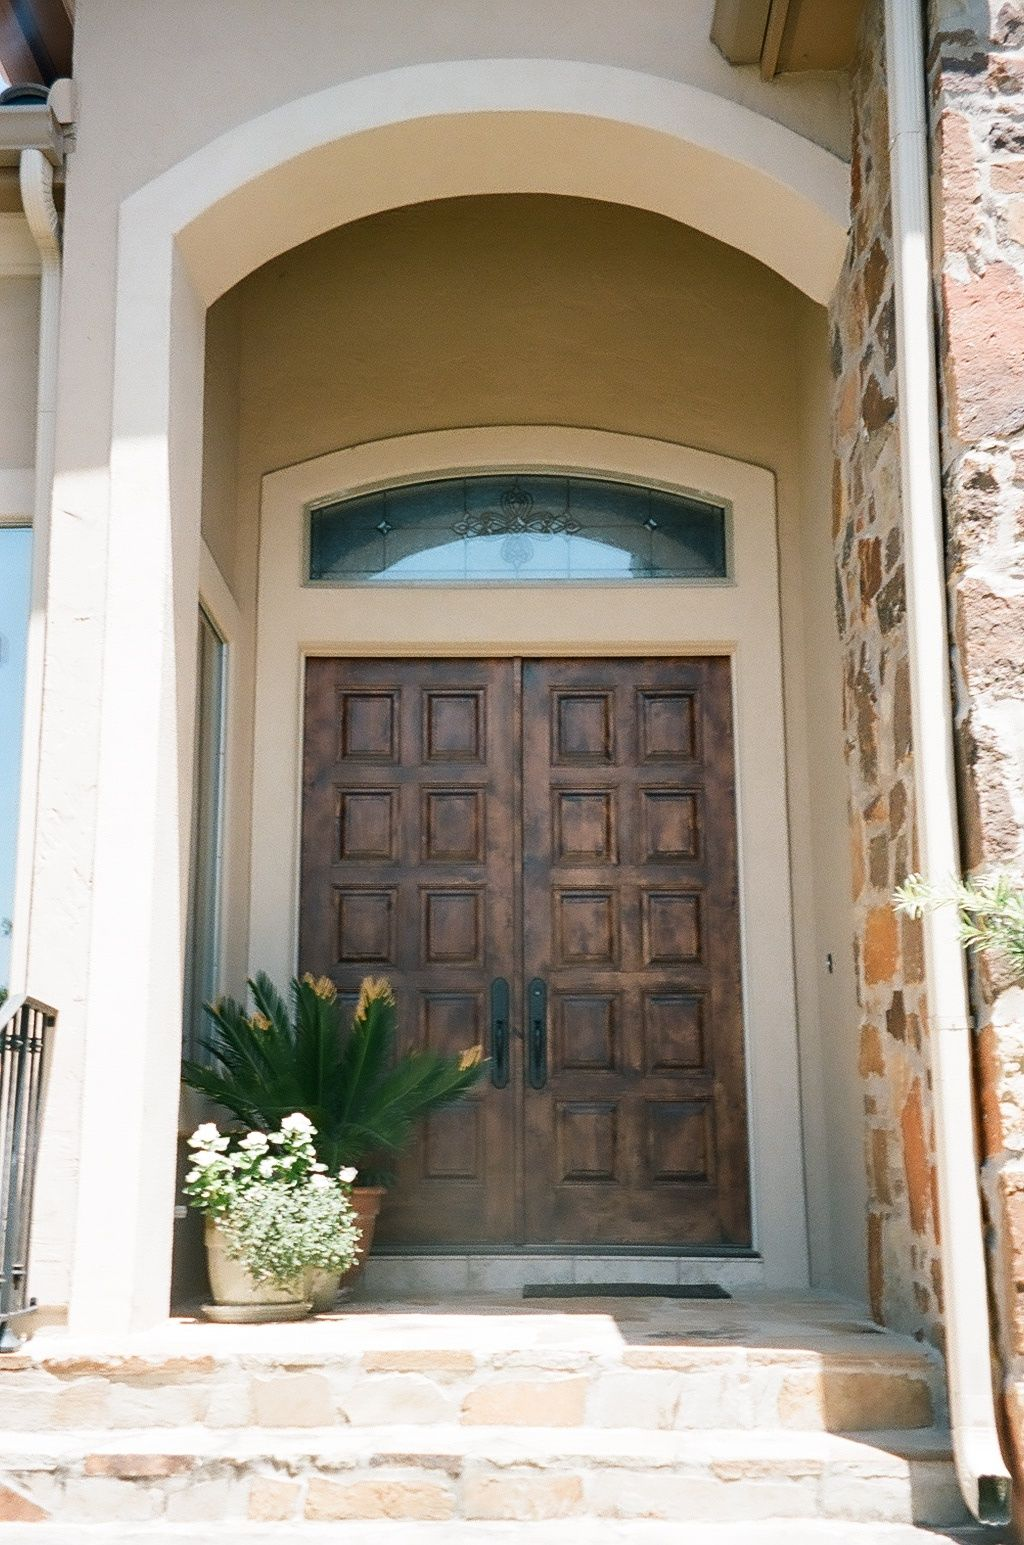 Rustic Wood Door 10 Panel Solid Wood Double Door That Will Stand Out From Other Boring Doors In The Neighborhood Rustic Wood Doors Rustic Wood Wood Doors